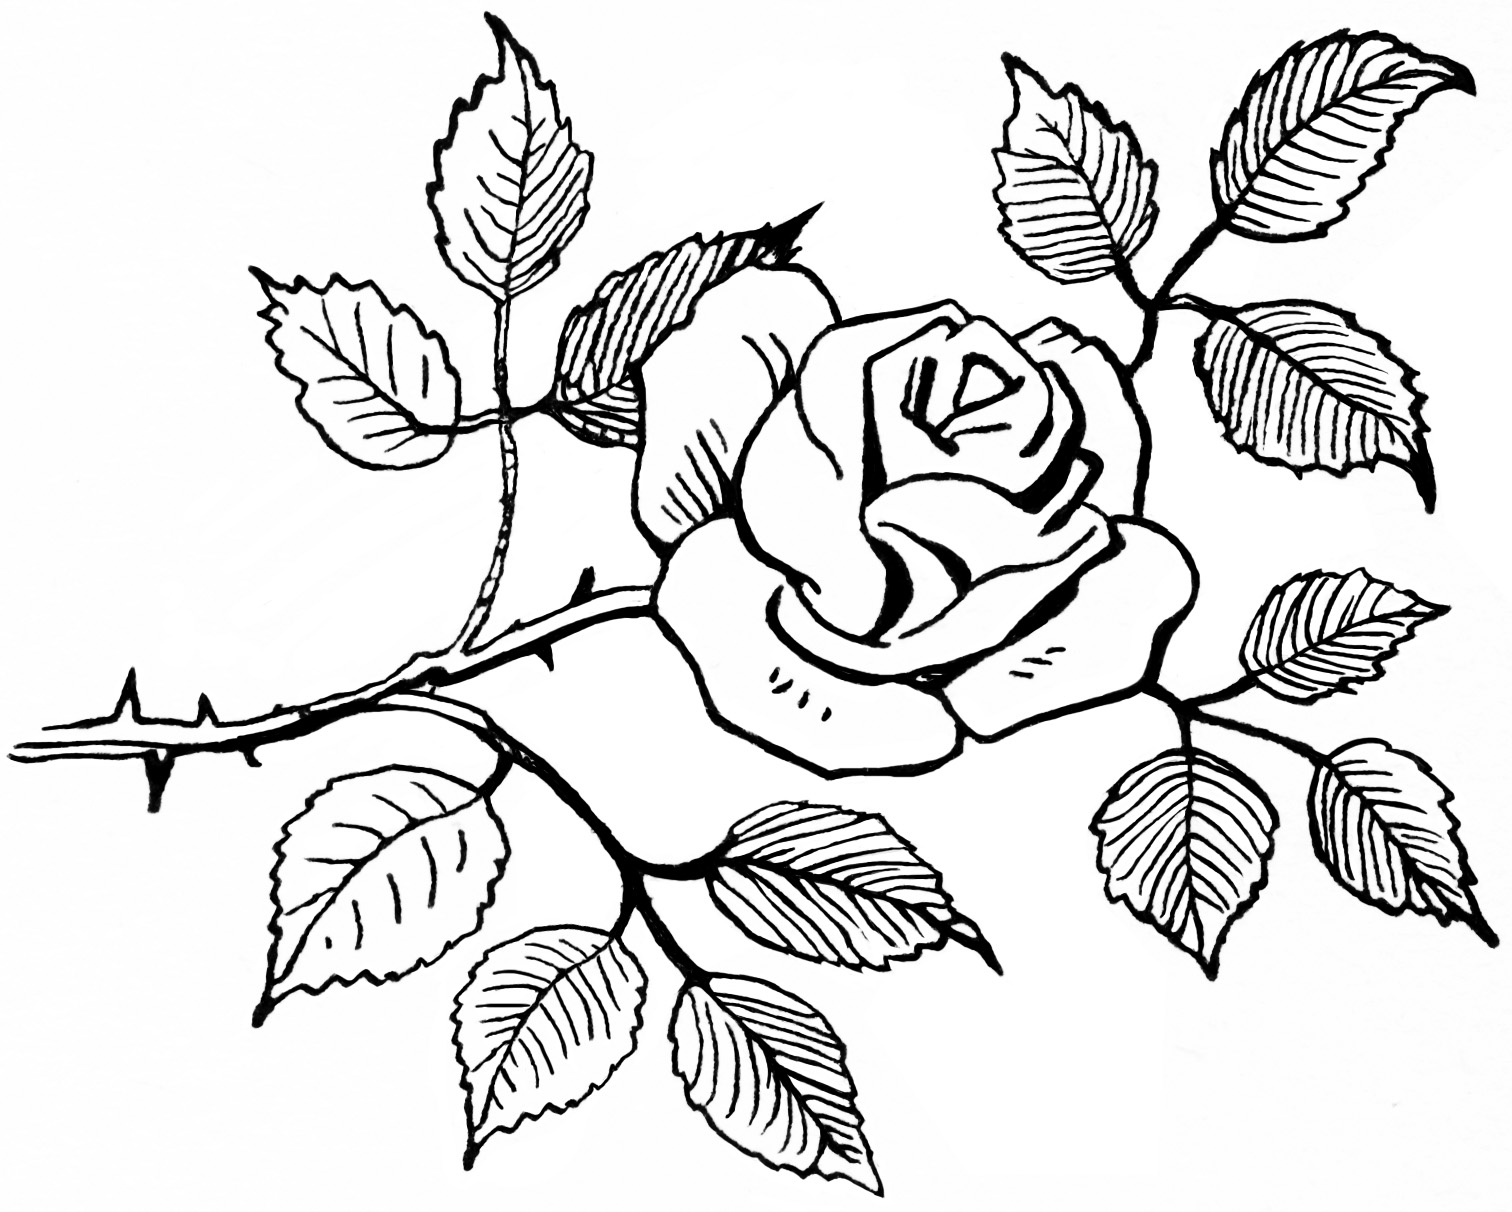 1512x1212 Knumathise Rose Clip Art Black And White Images